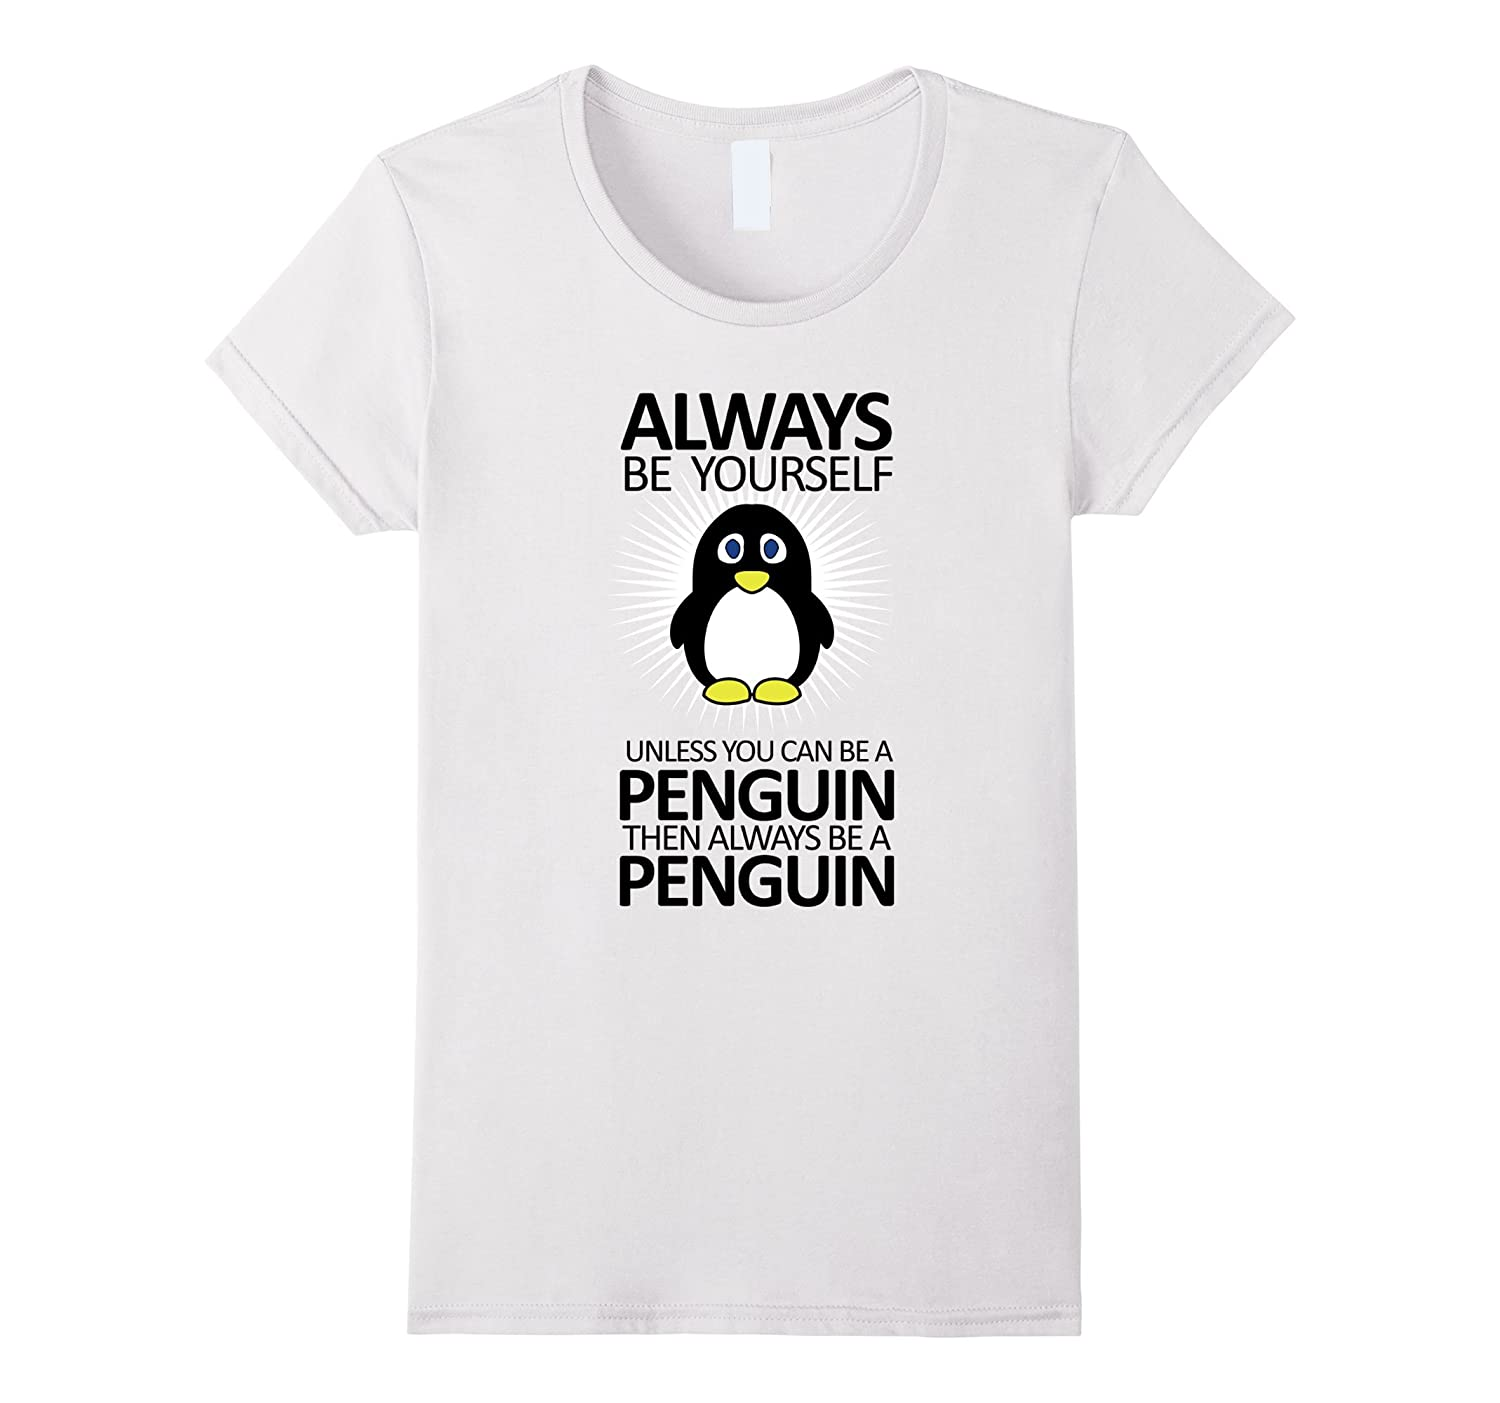 Always be yourself Adorable Funny Penguin T-Shirt